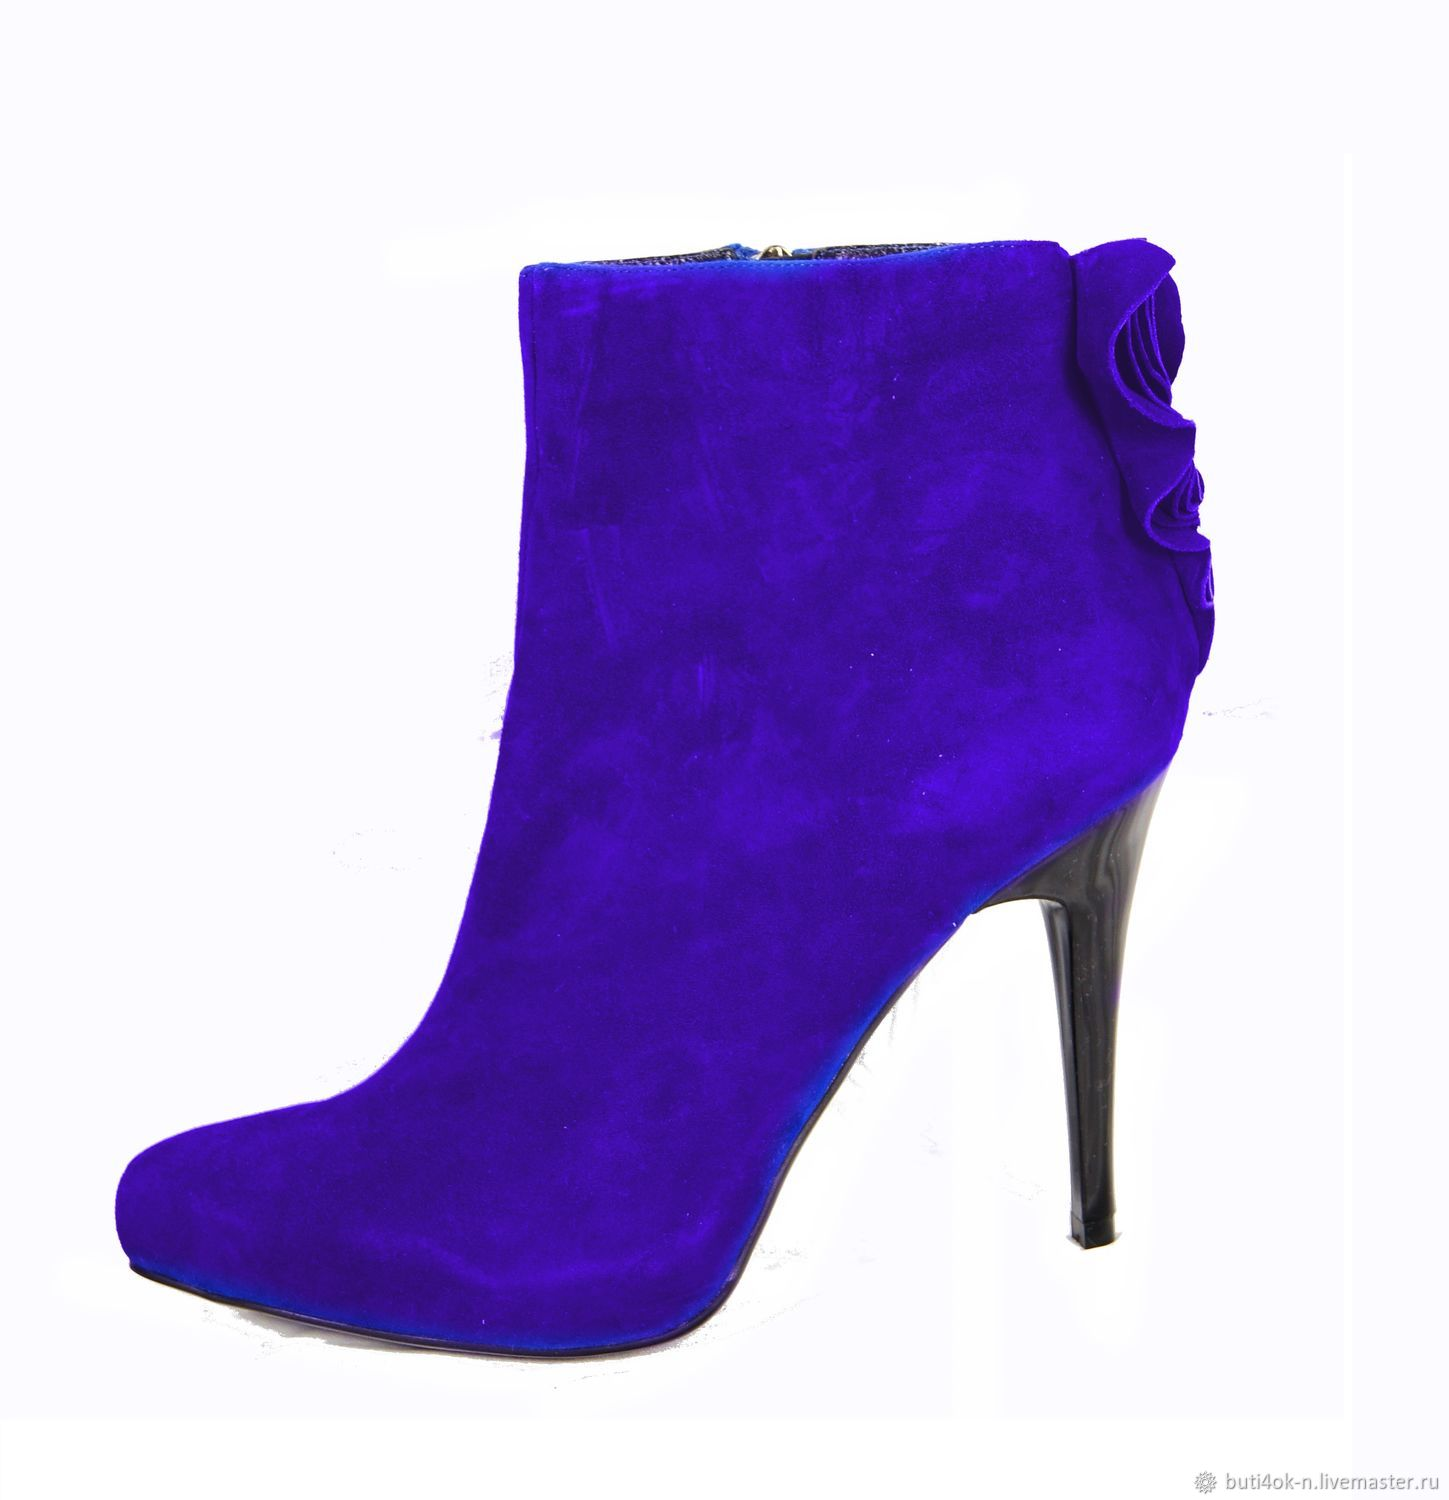 Bright blue velour ankle boots for autumn/spring, Ankle boots, Nelidovo,  Фото №1